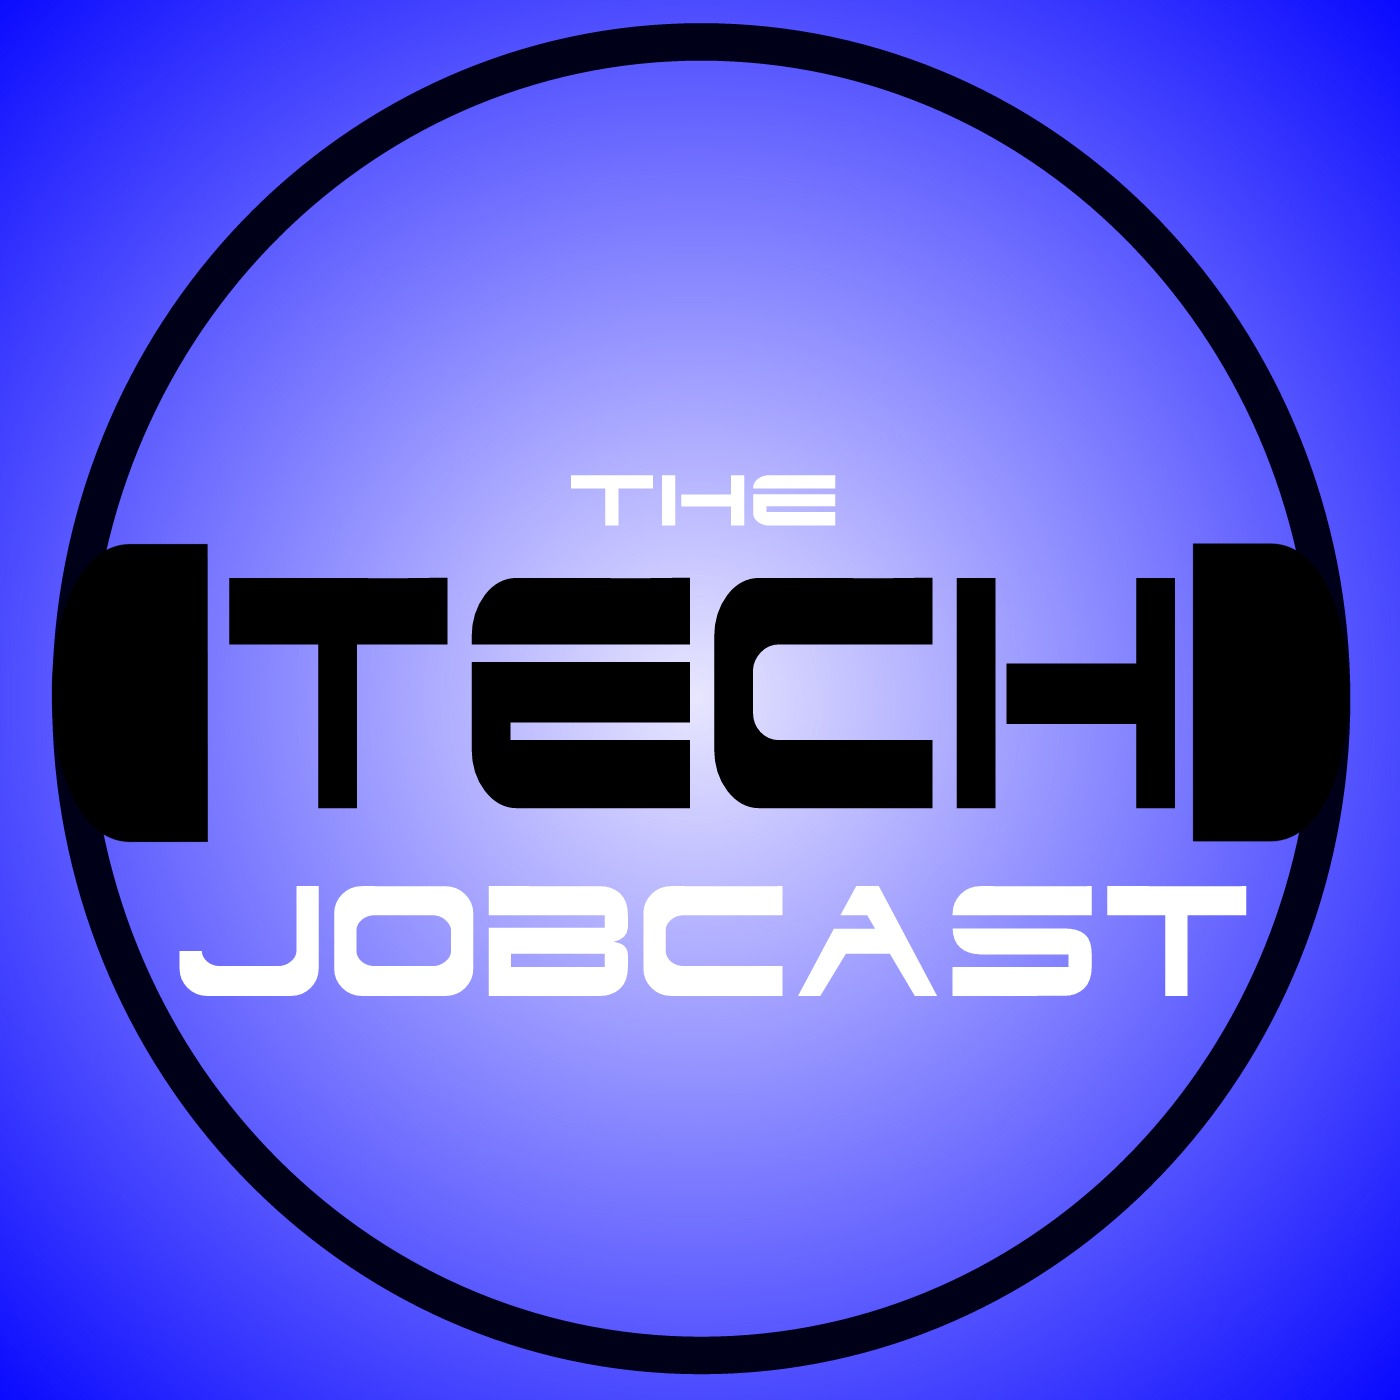 IT Job listings for the week of June 25, 2017